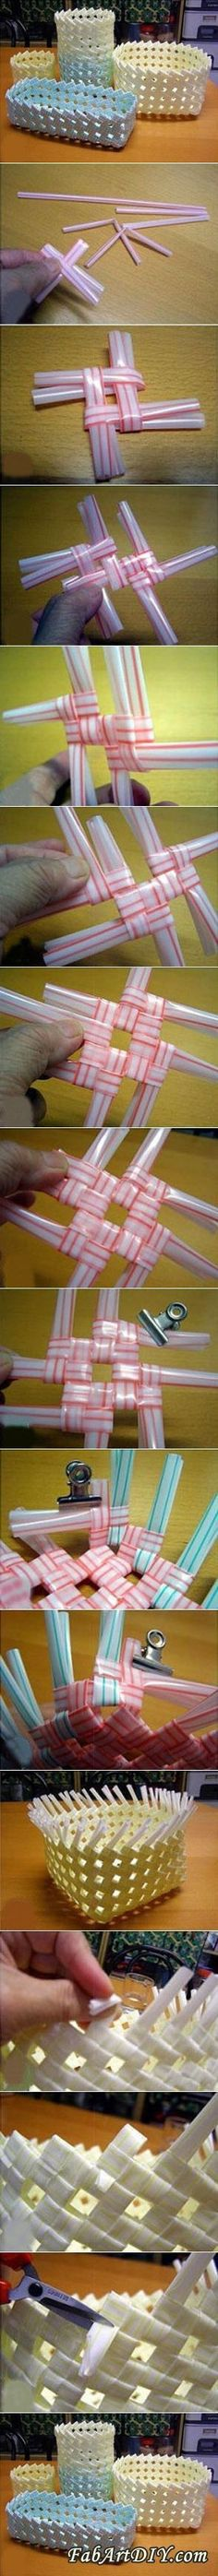 TUTORIAL to MAKE ALL KINDS OF BASKETS FROM SODA STRAWS!!! Pretty! tutorial de canastas hechas con sorbetos